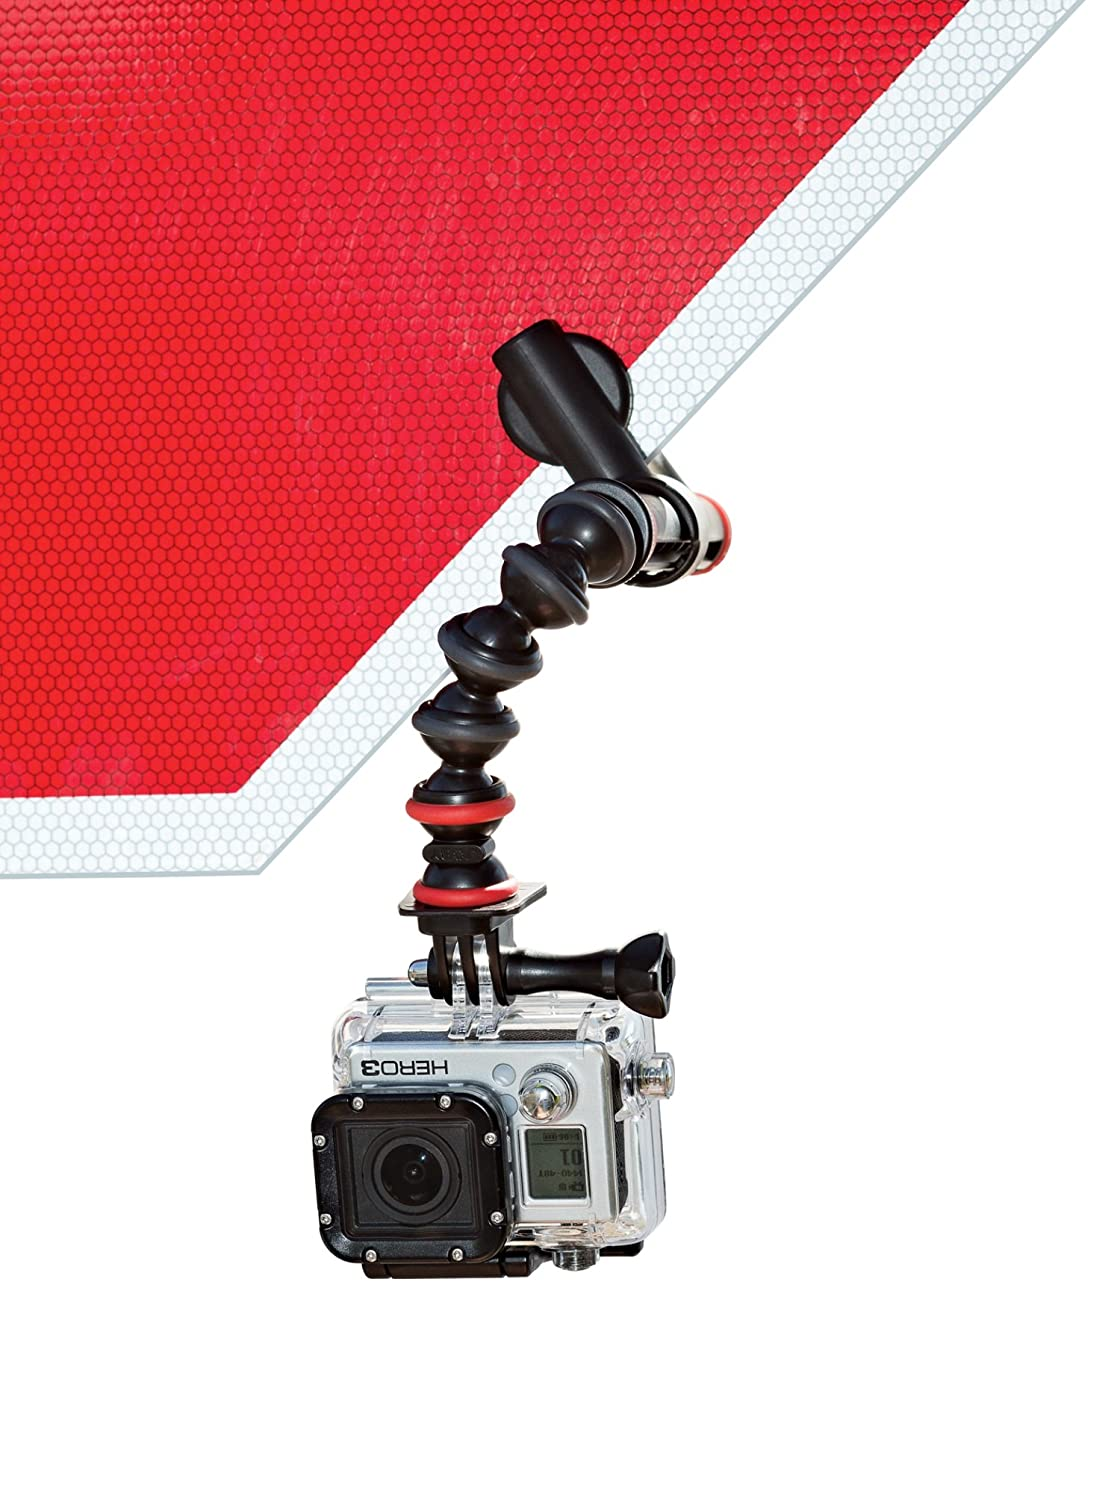 JOBY Action Clamp and Locking Arm for GoPro and Sports Action ...